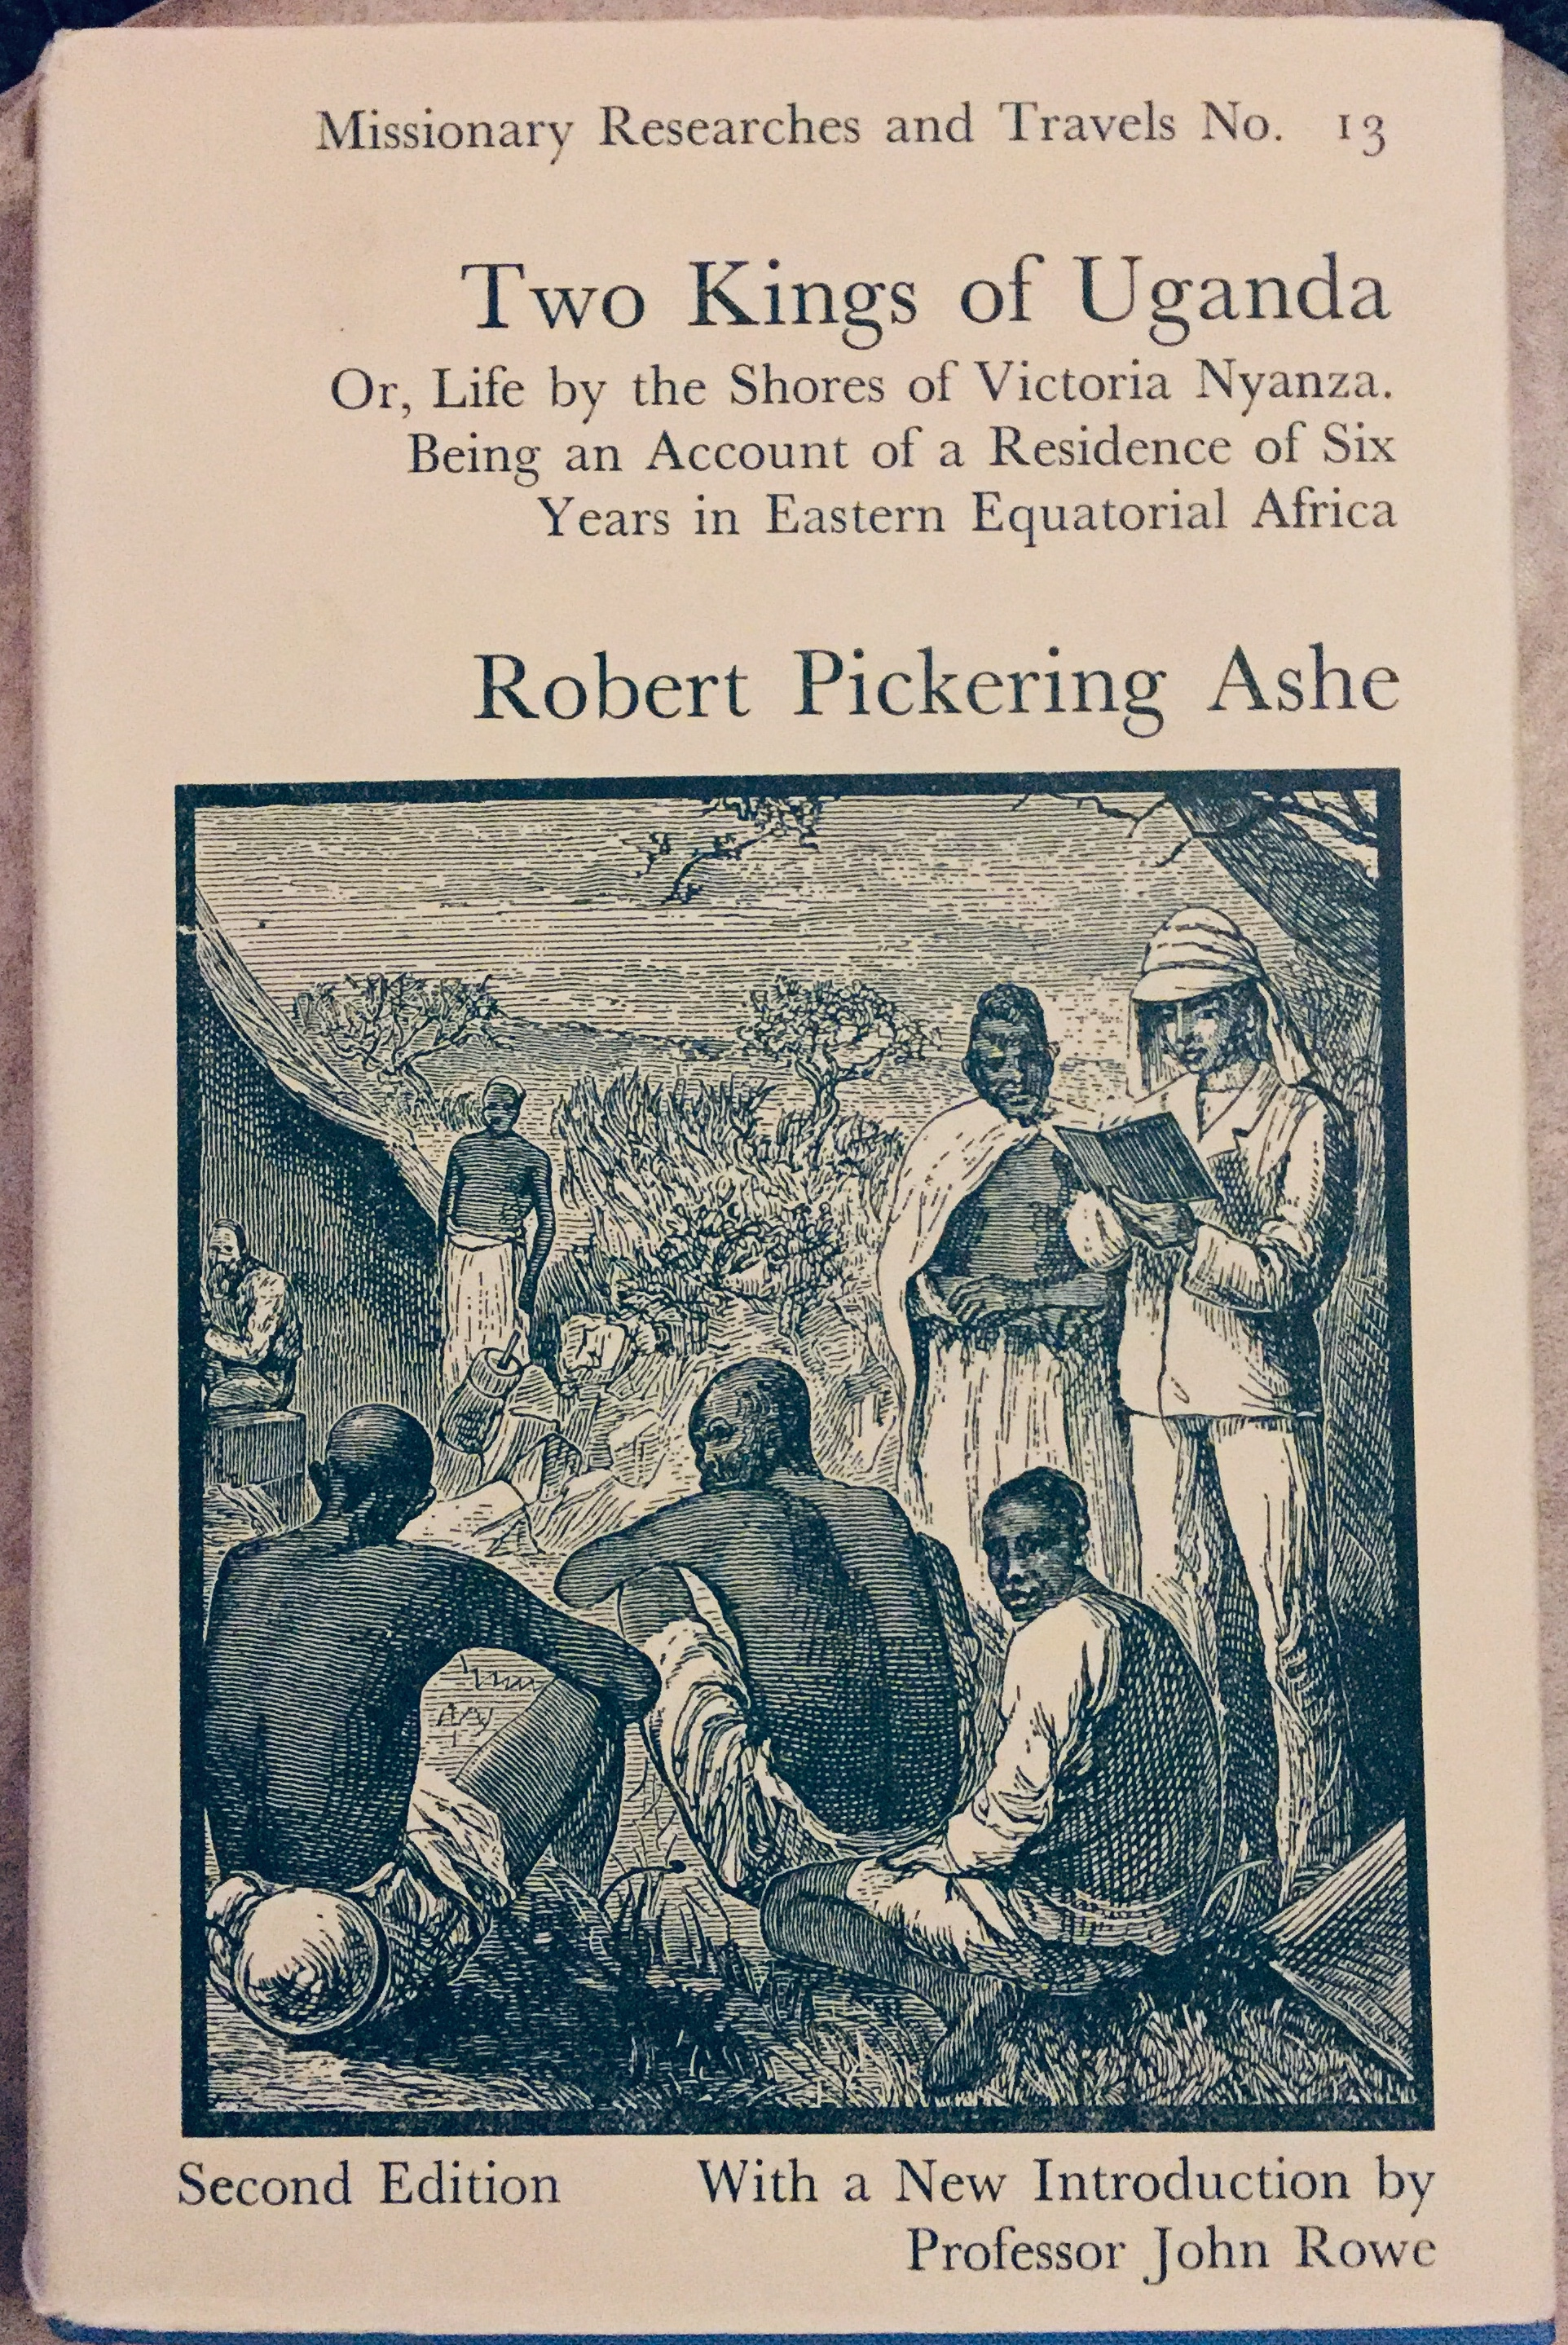 Two Kings of Uganda, or Life by the Shores of Victoria Nyanza, Being an Account of a Residence of Six Years in Eastern Equatorial Africa – By Robert Pickering Ashe.